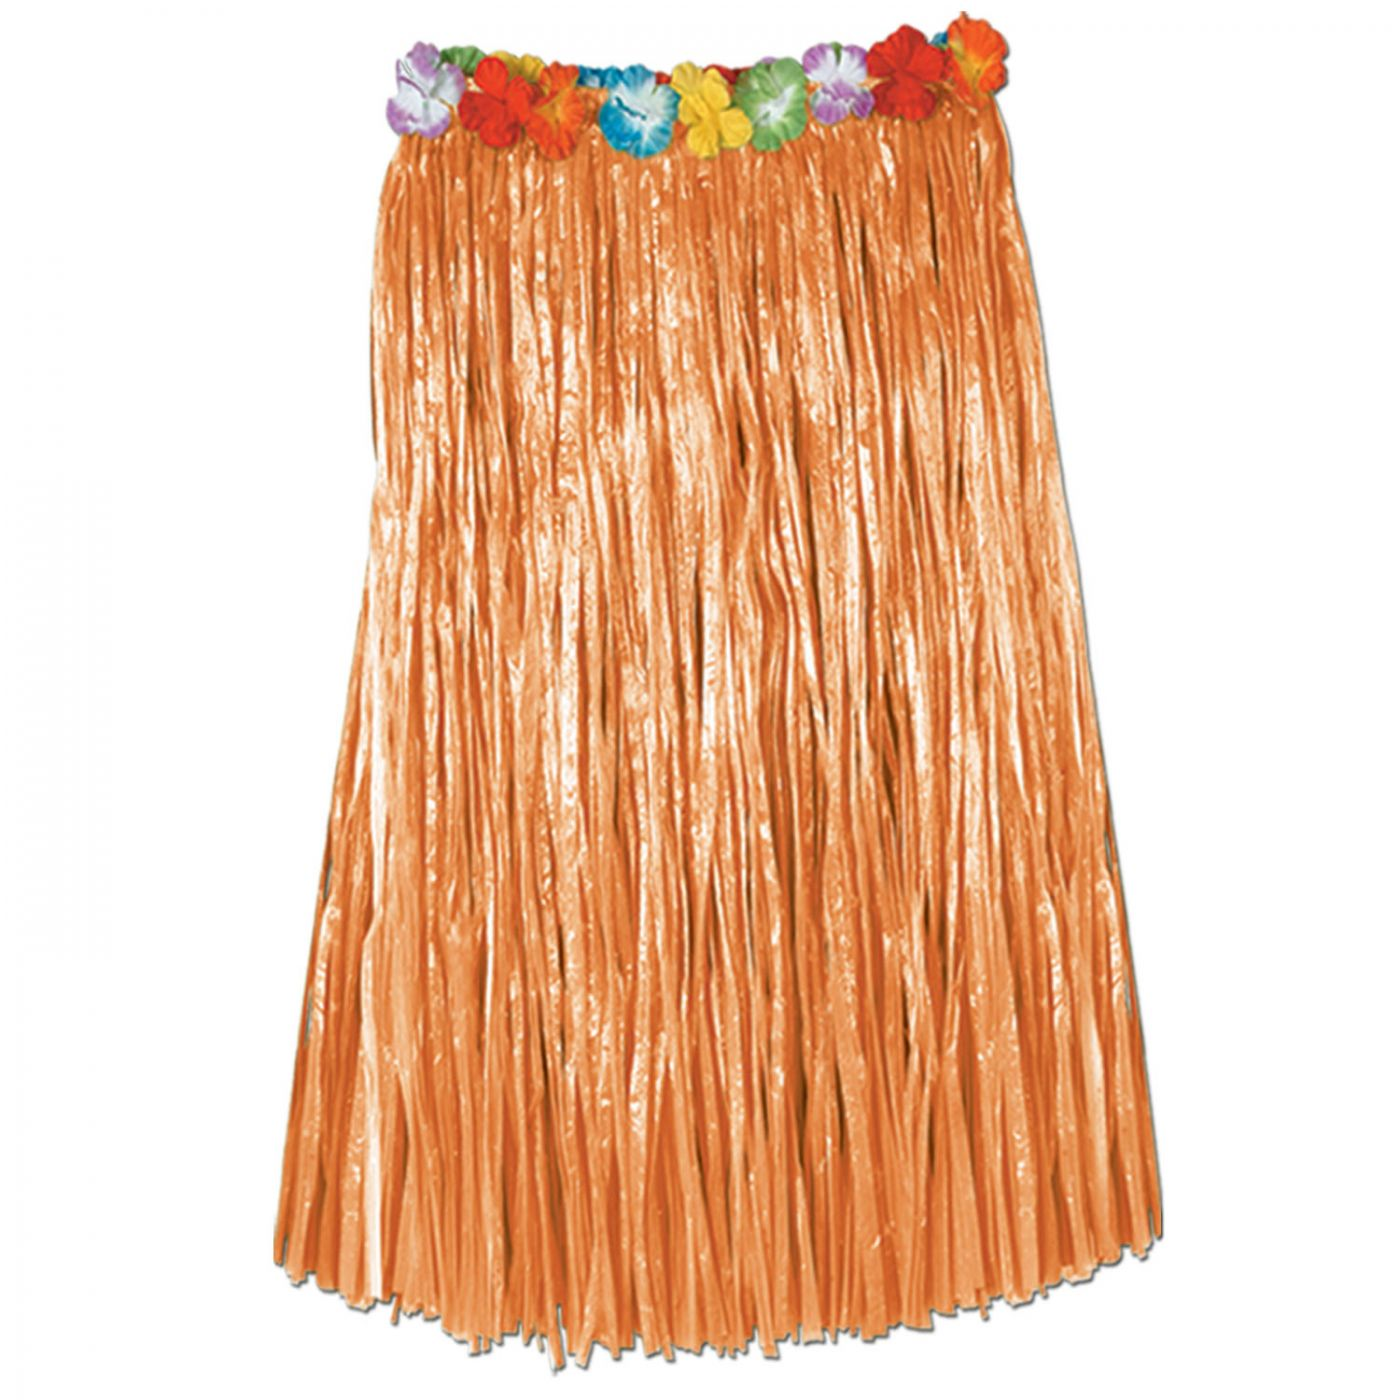 Adult Artificial Grass Hula Skirt image